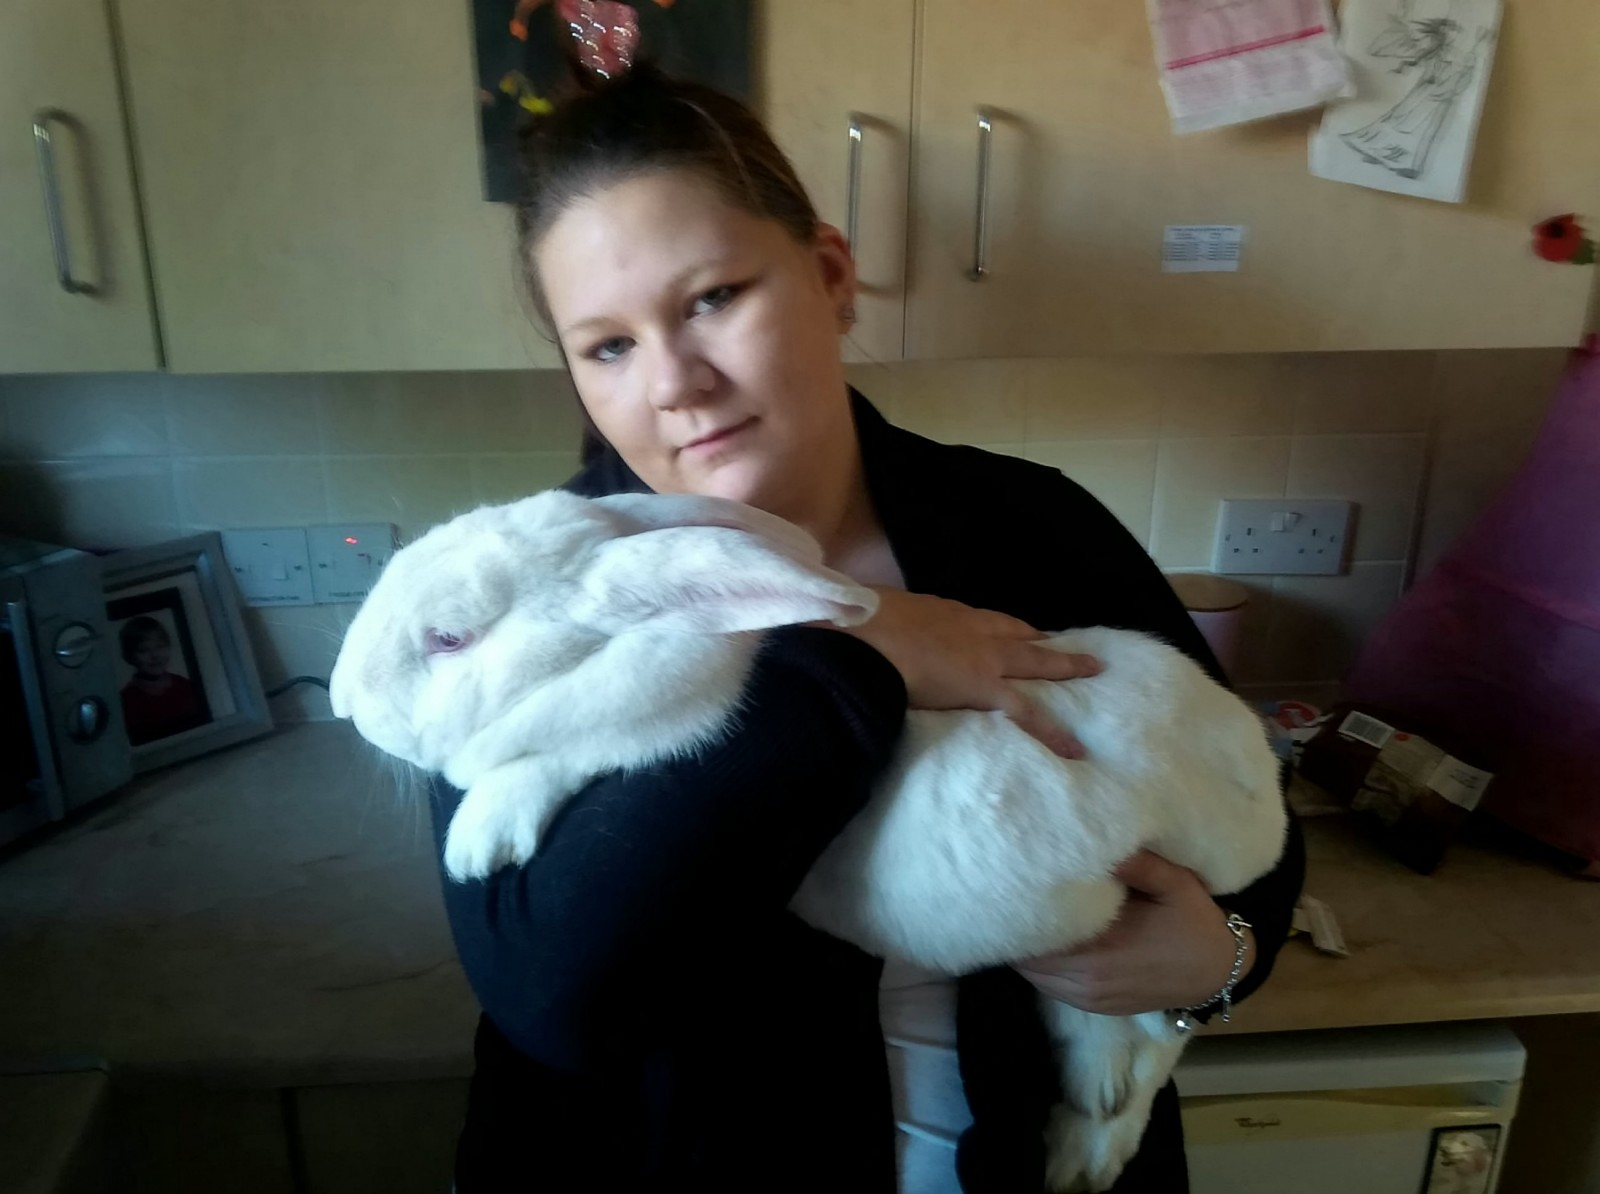 Horror as thugs slaughter giant pet rabbit and chop off his ears